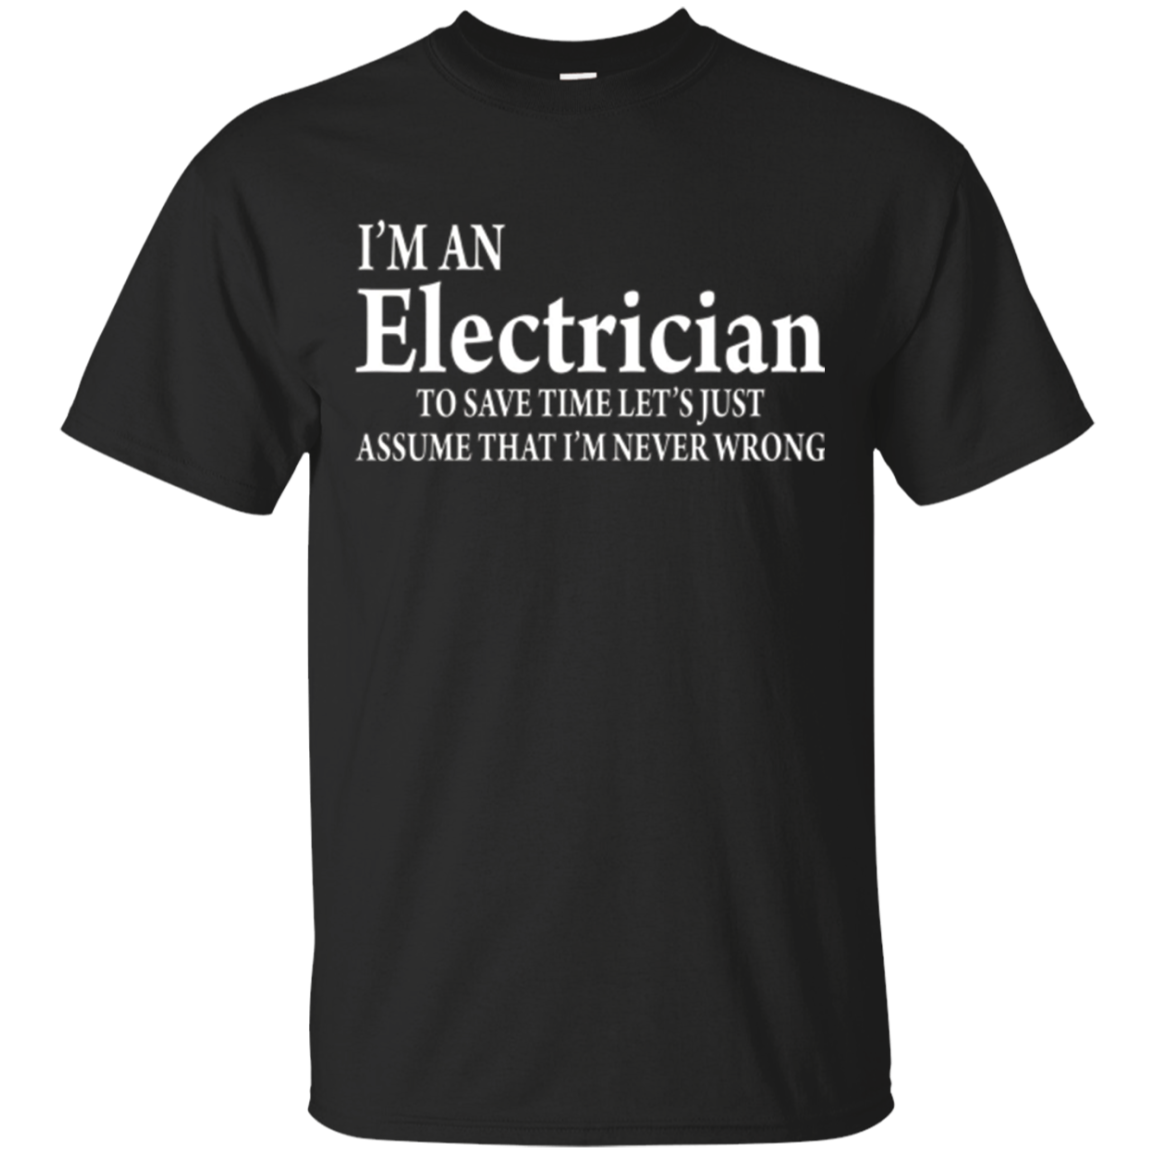 Funny Electrician Quotes T-Shirt, Electrician Job Title Gift